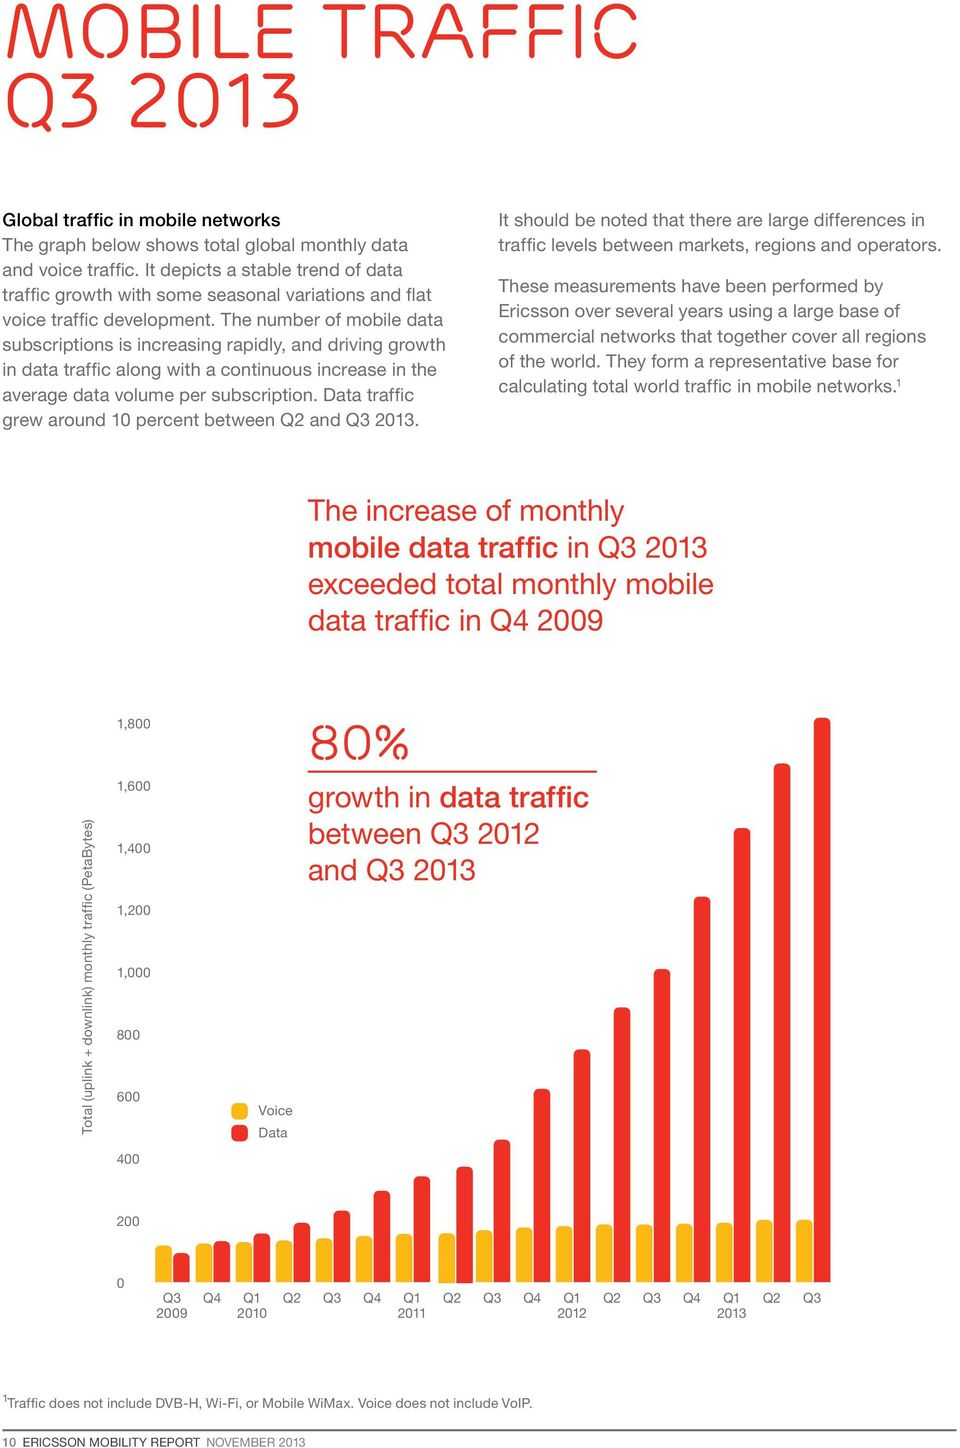 The number of mobile data subscriptions is increasing rapidly, and driving growth in data traffic along with a continuous increase in the average data volume per subscription.